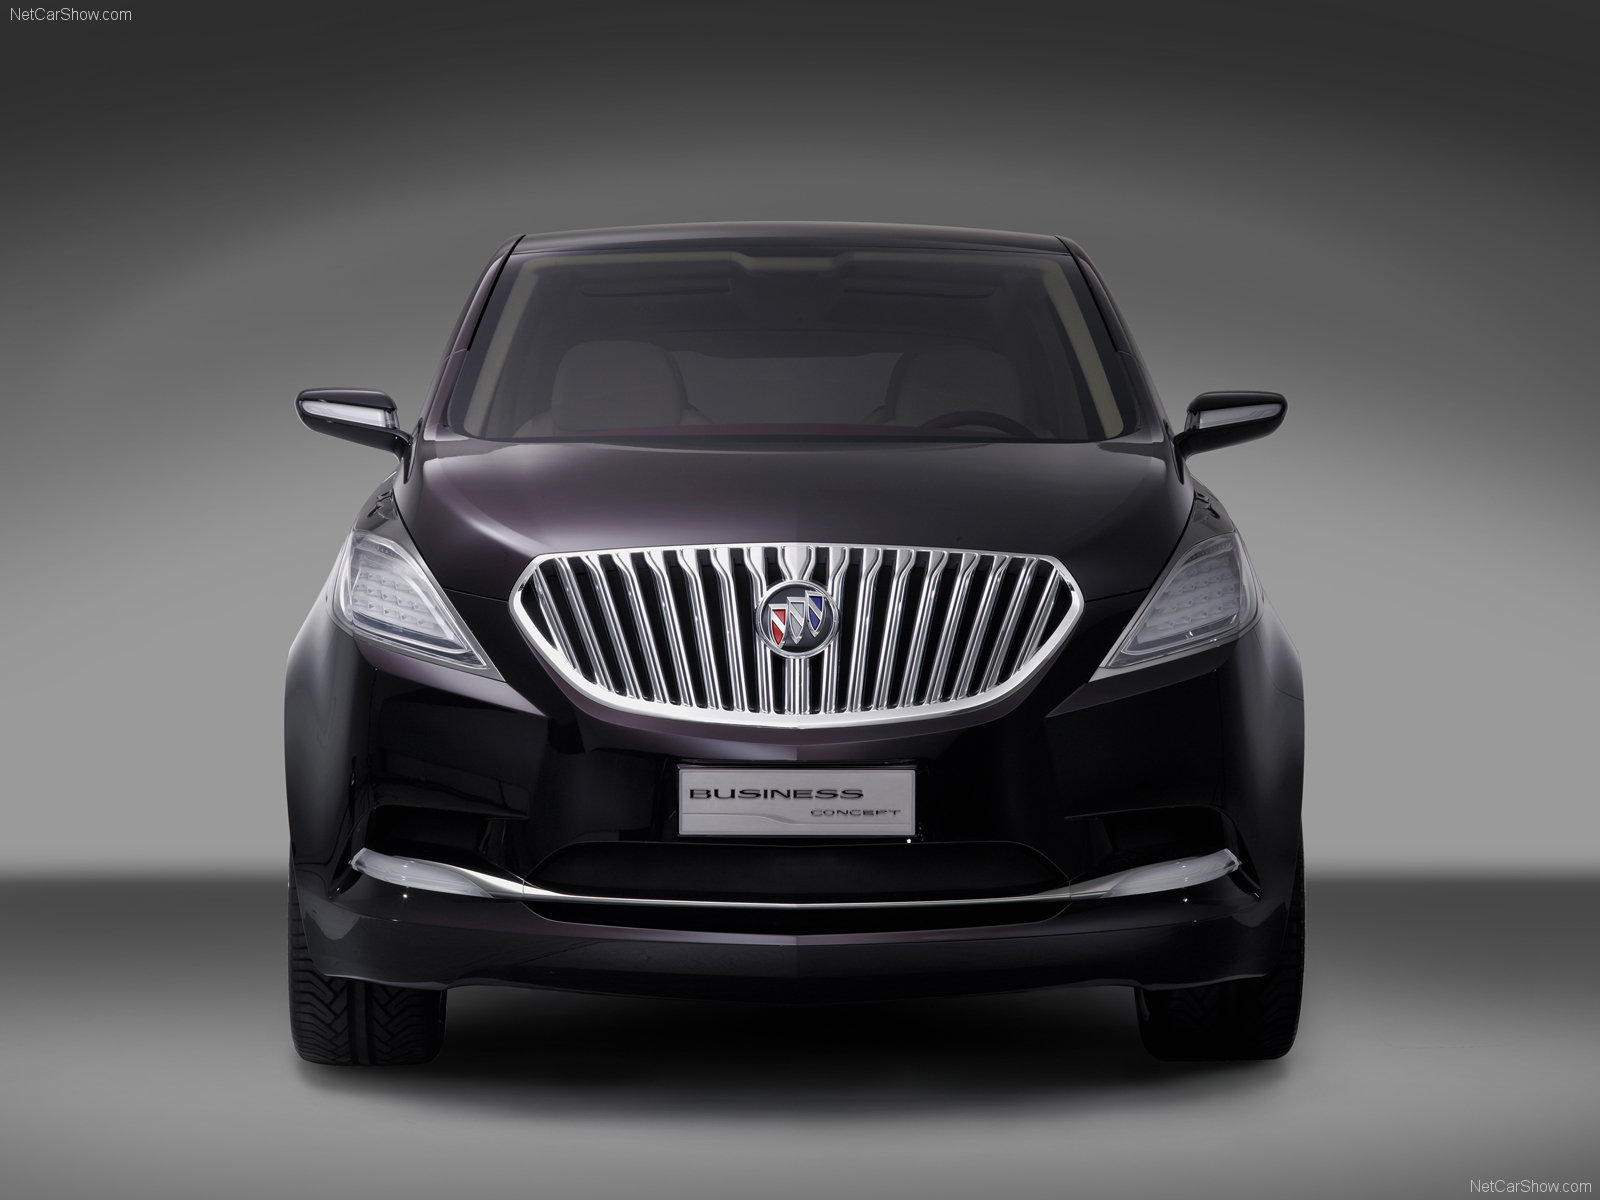 Buick Business Concept photo 63677